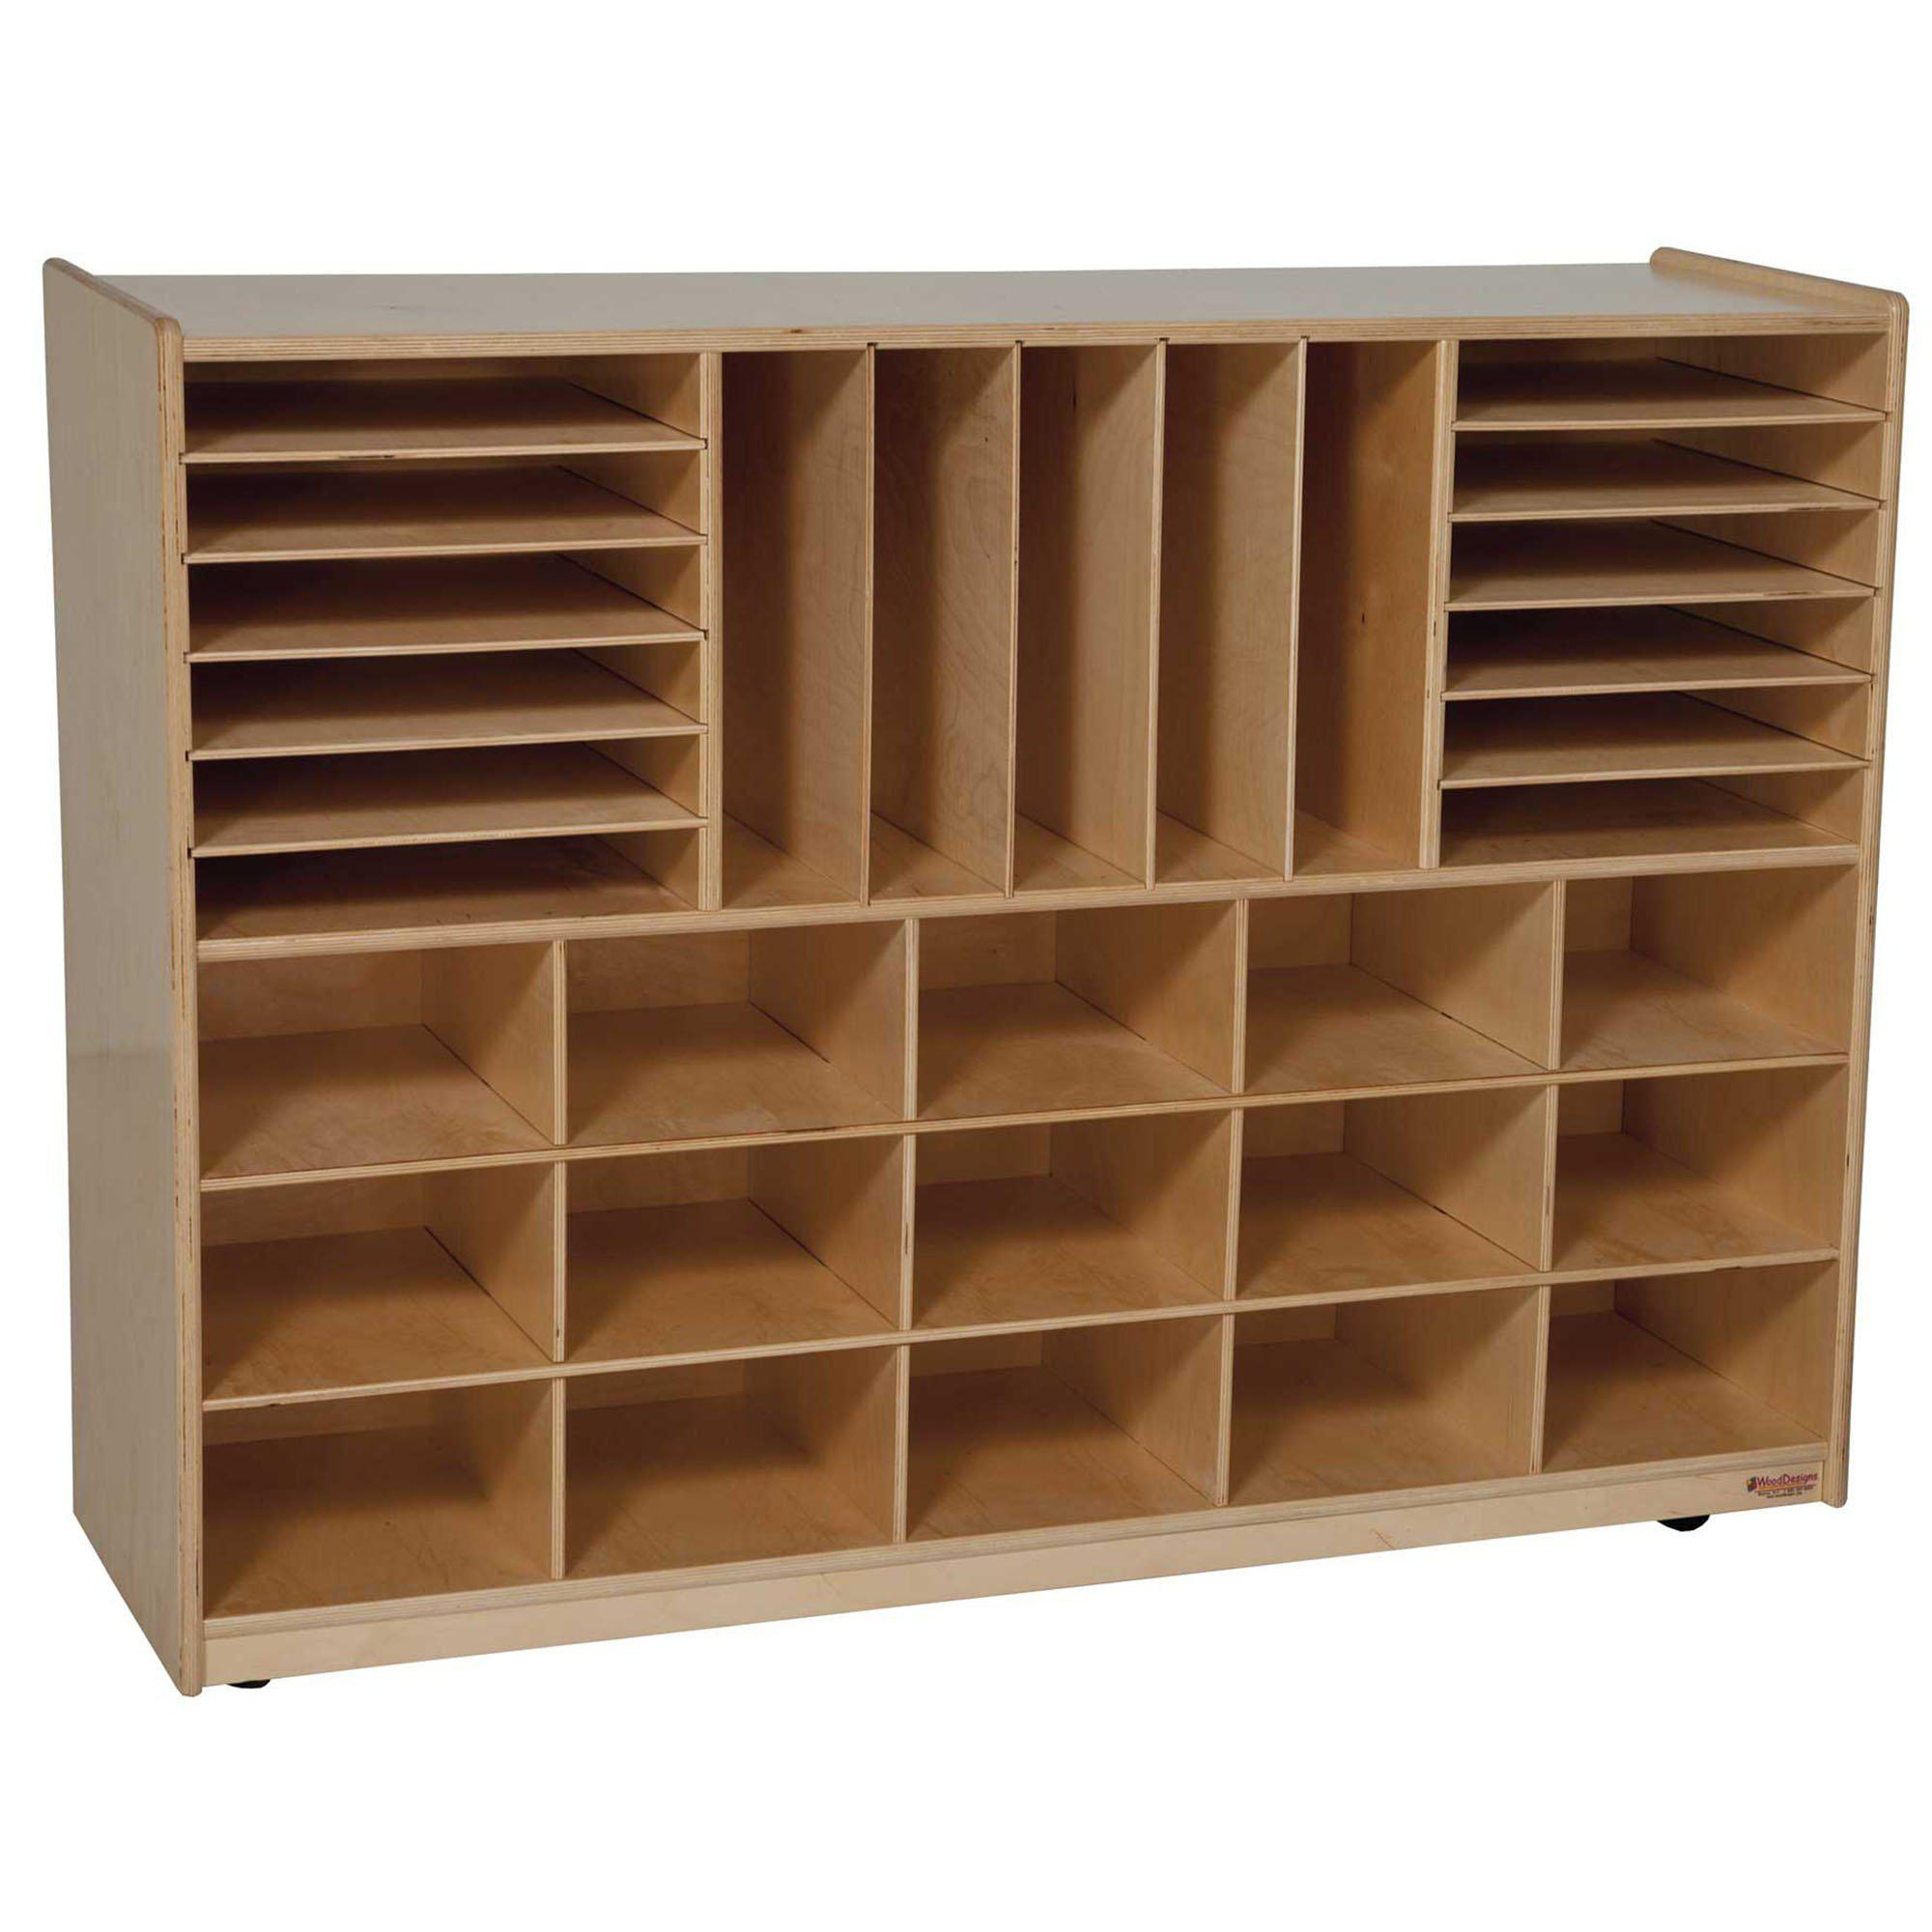 Wood Designs Multi-Storage without Trays